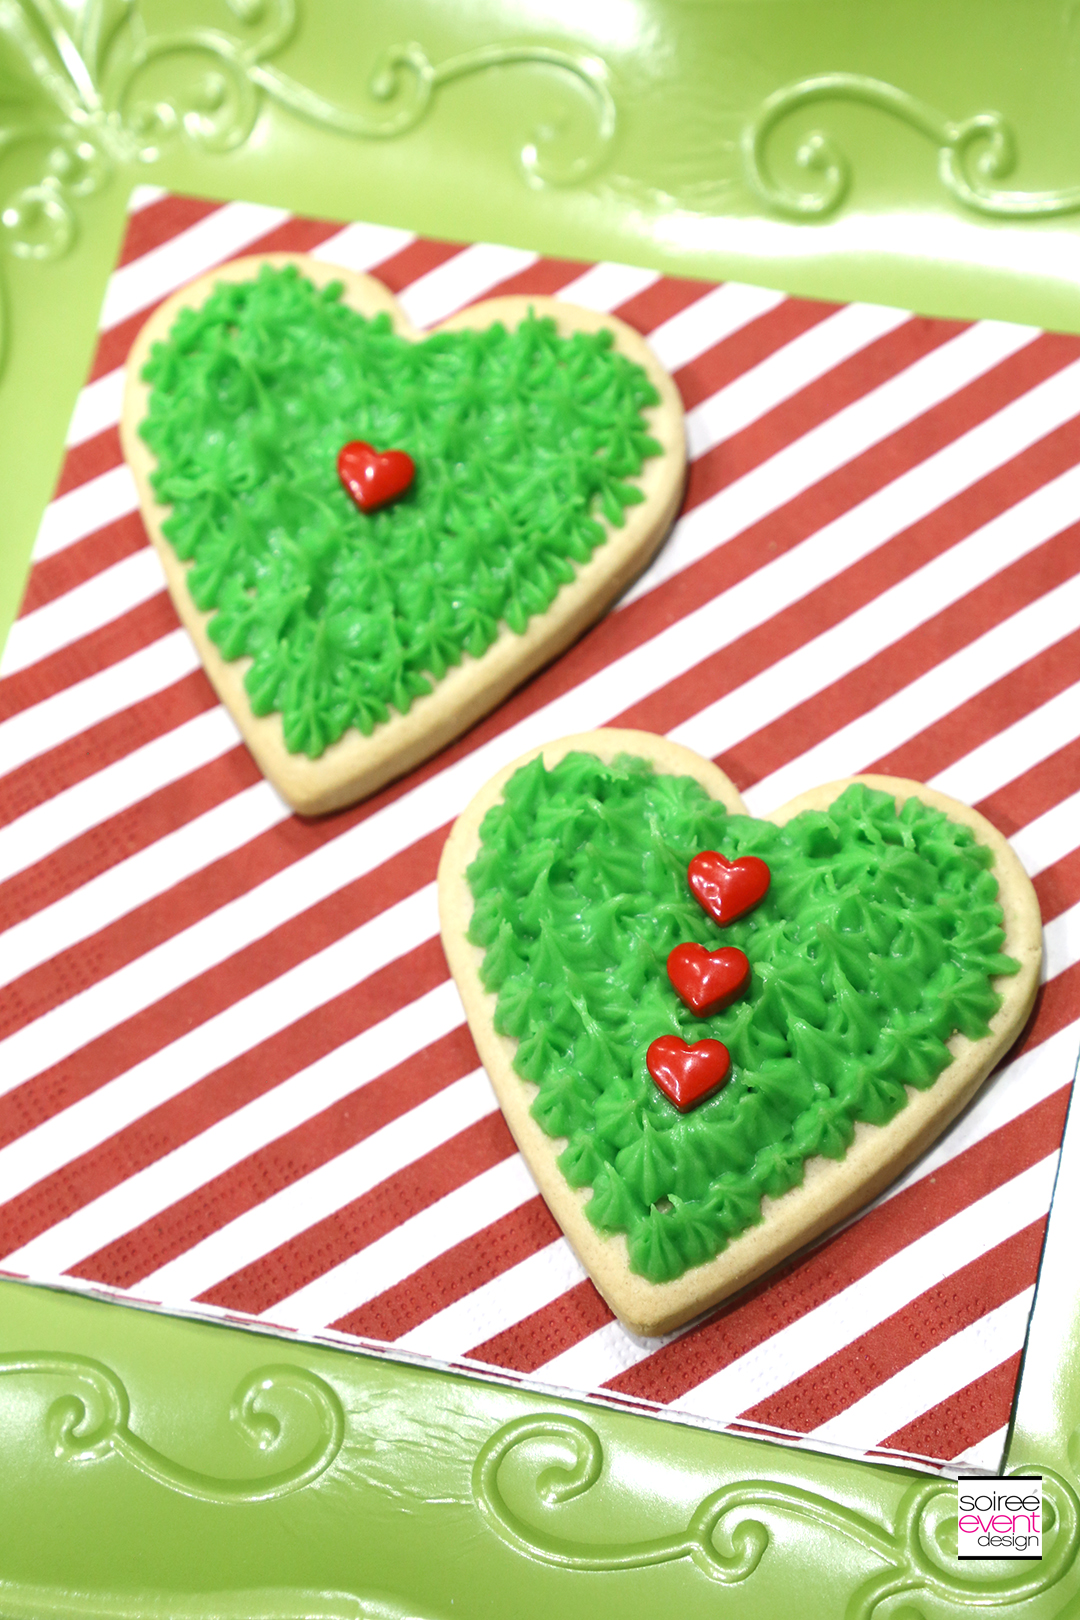 Grinch Dessert Ideas - Grinch Heart Cookies - Step 4